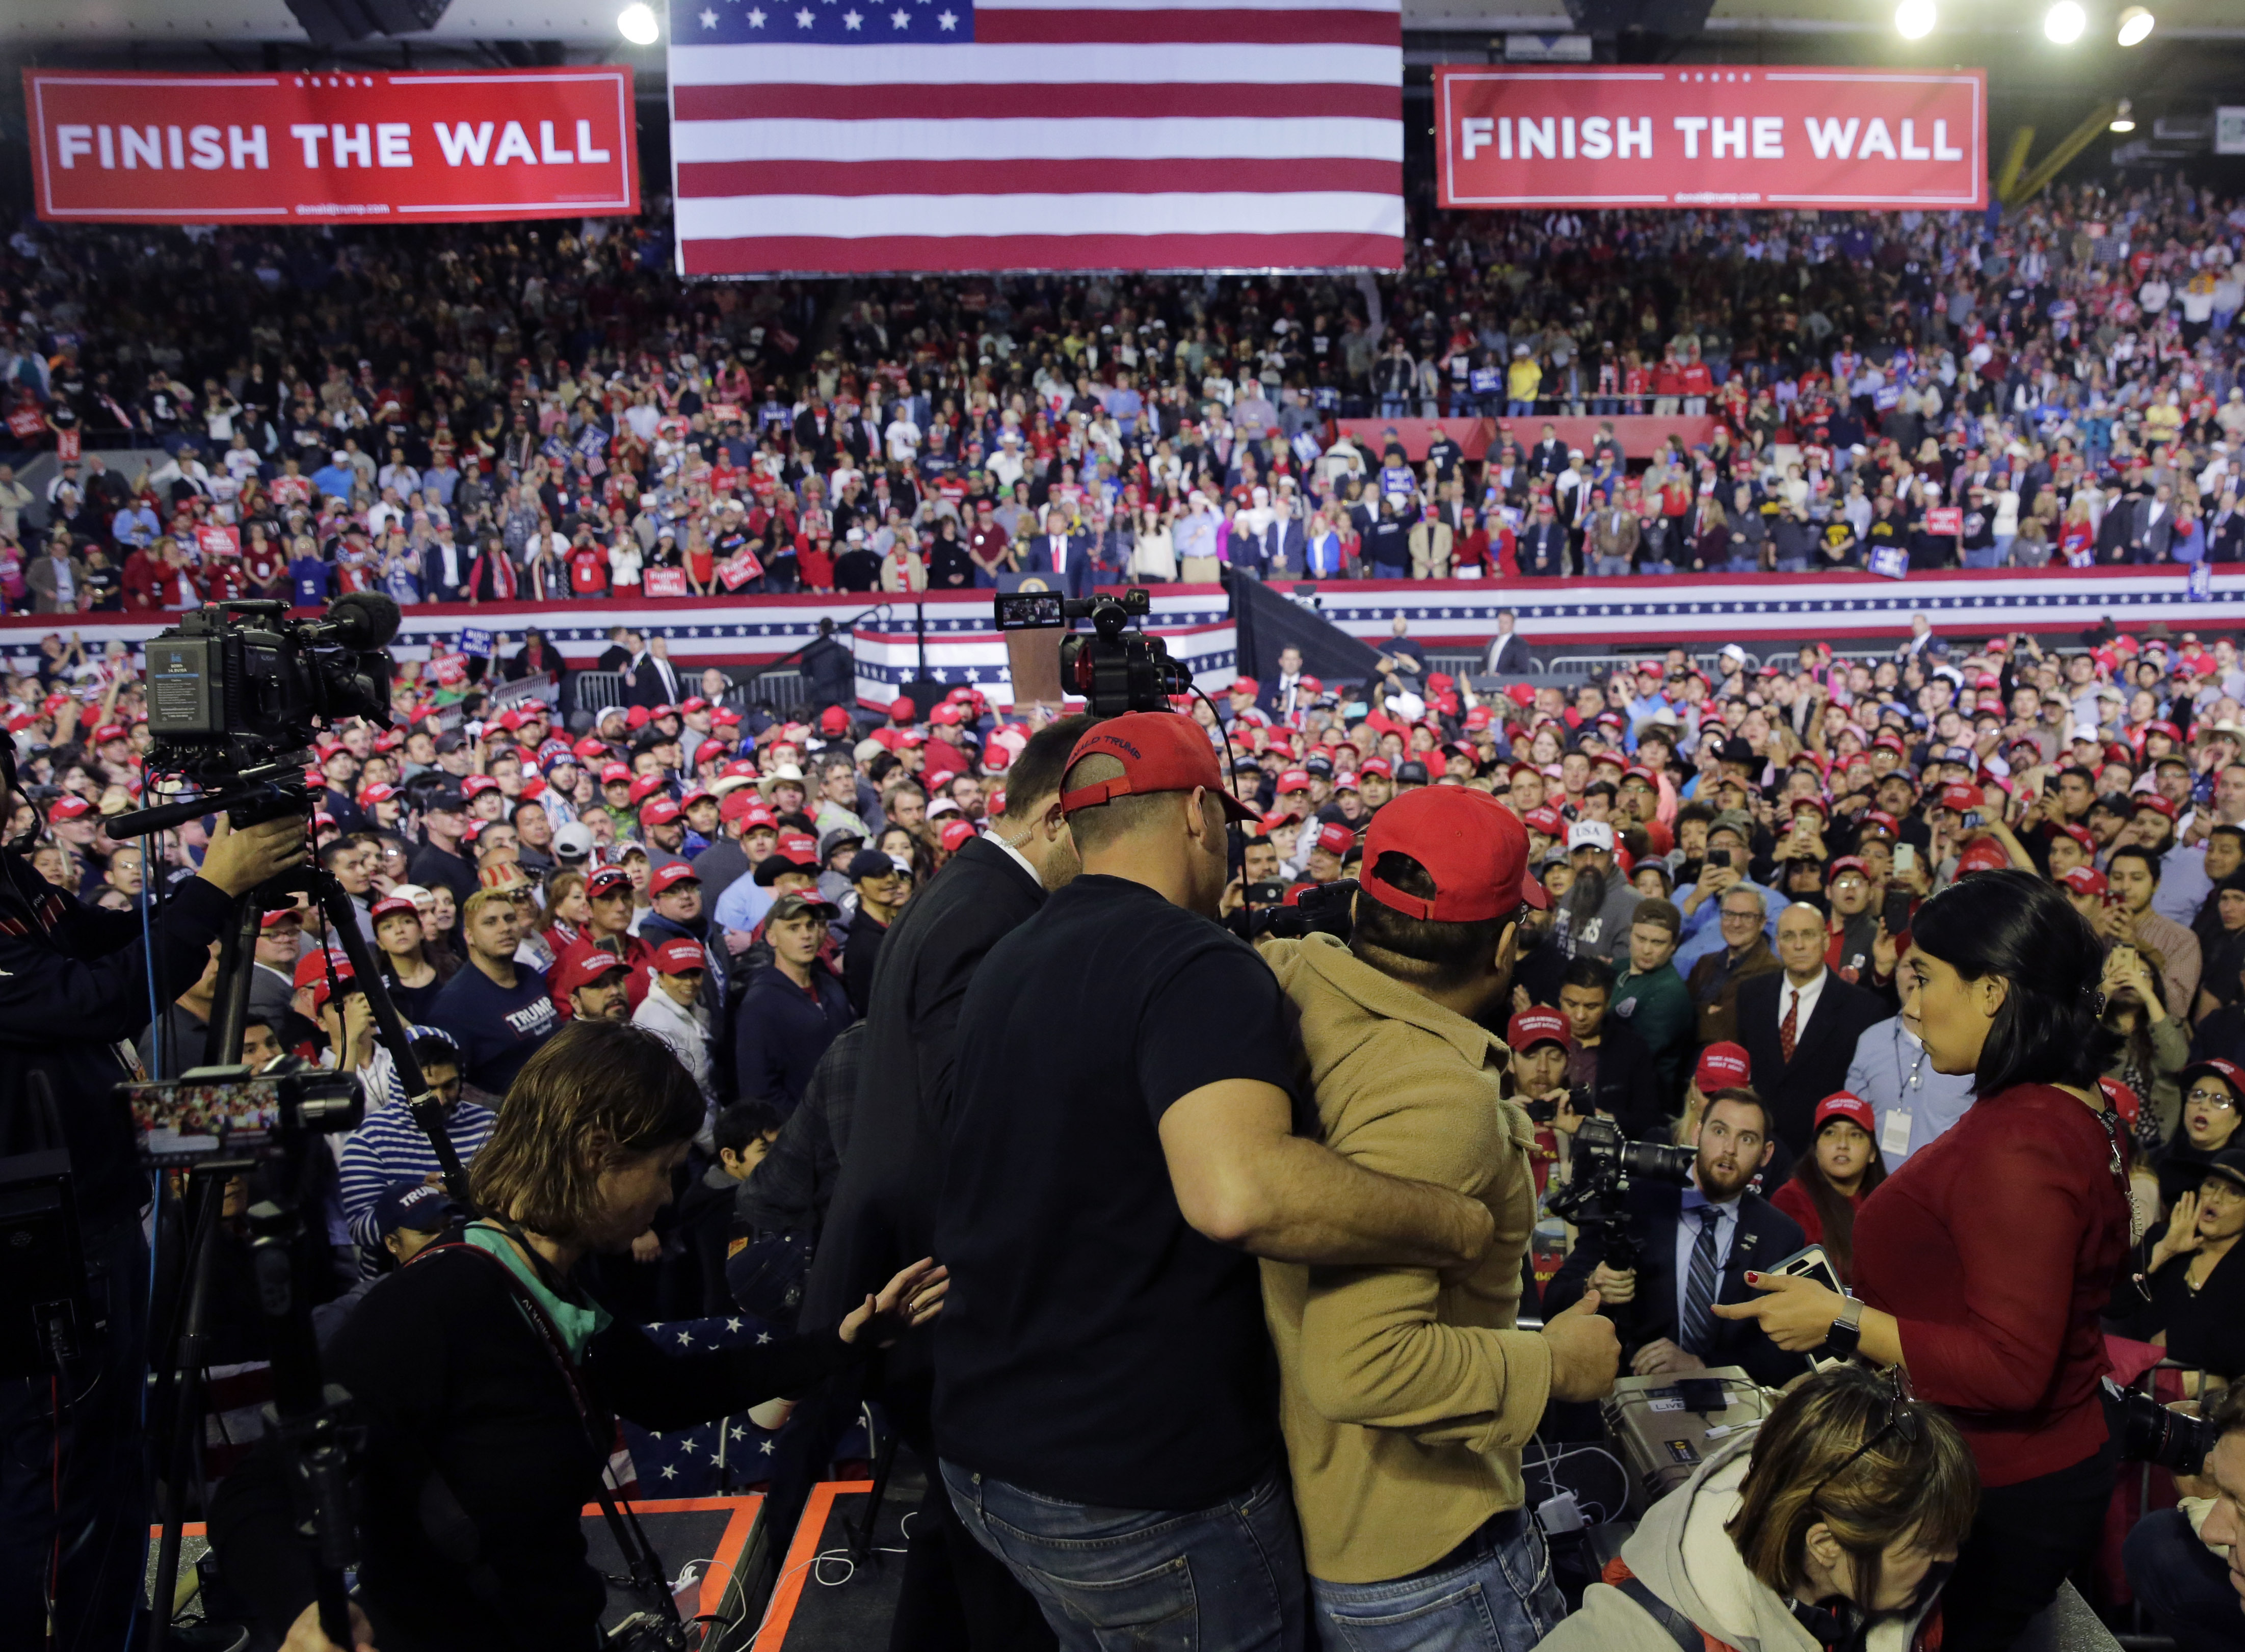 BBC cameraman assaulted in 'violent attack' at Donald Trump rally